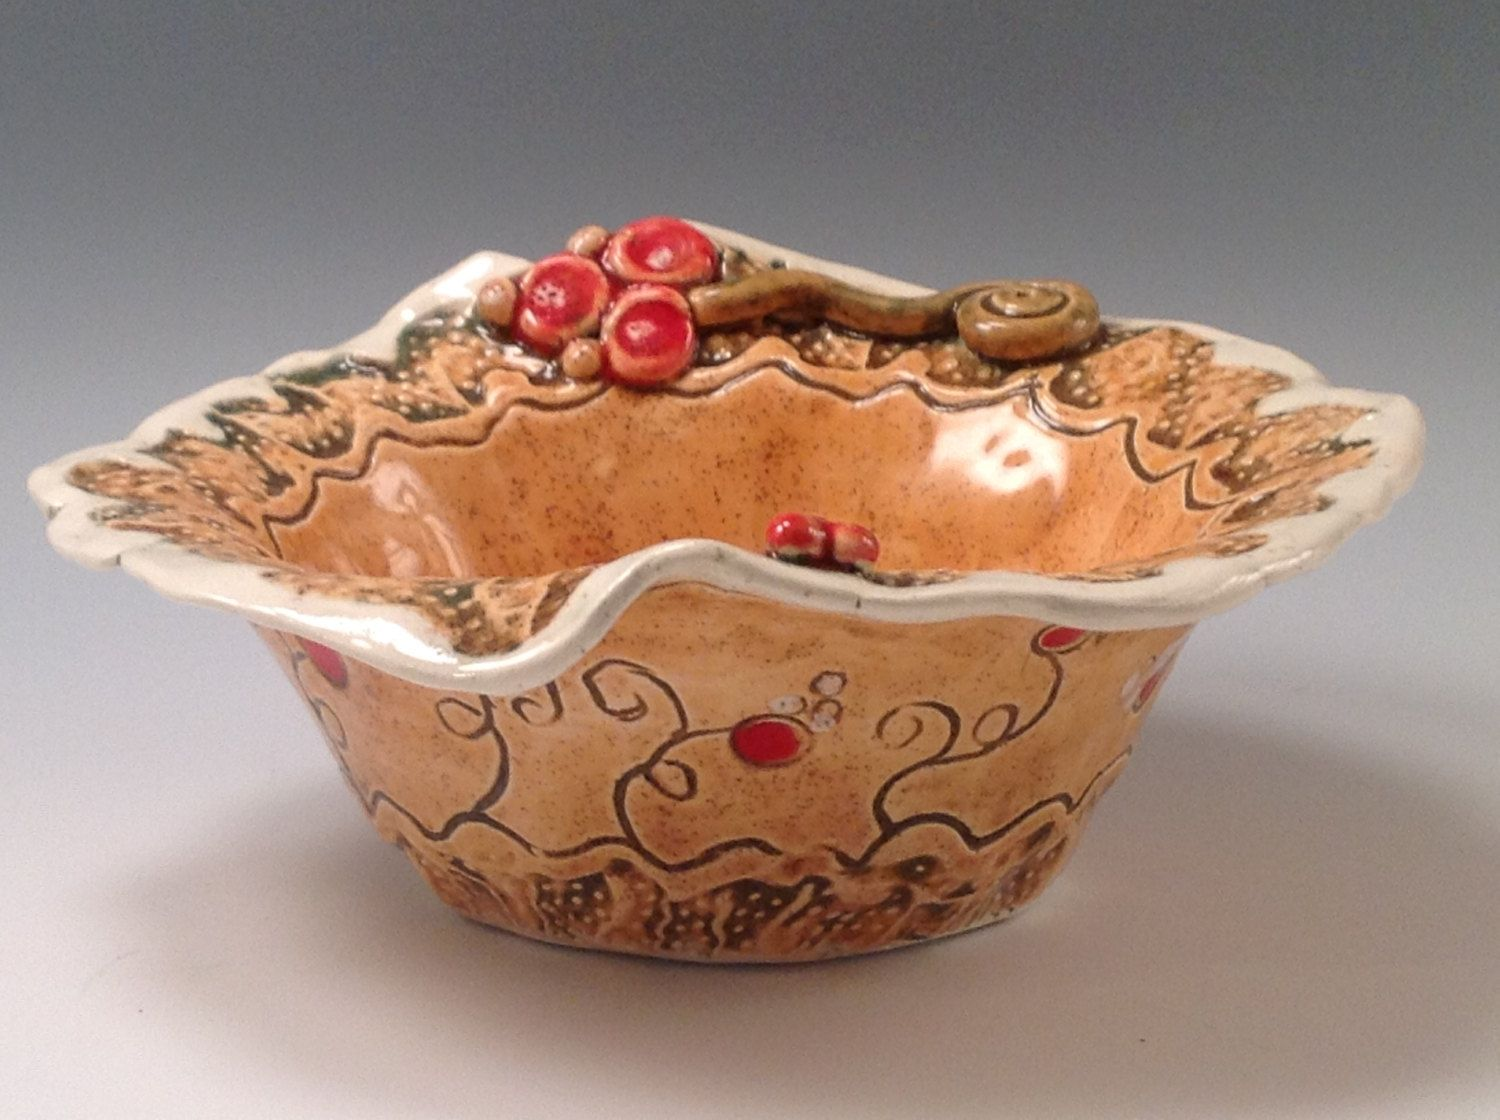 Bowl/orange bowl/pottery bowl/ceramic bowl/candy dish/serving dish/flowered pottery/orange pottery by joycepottery on Etsy